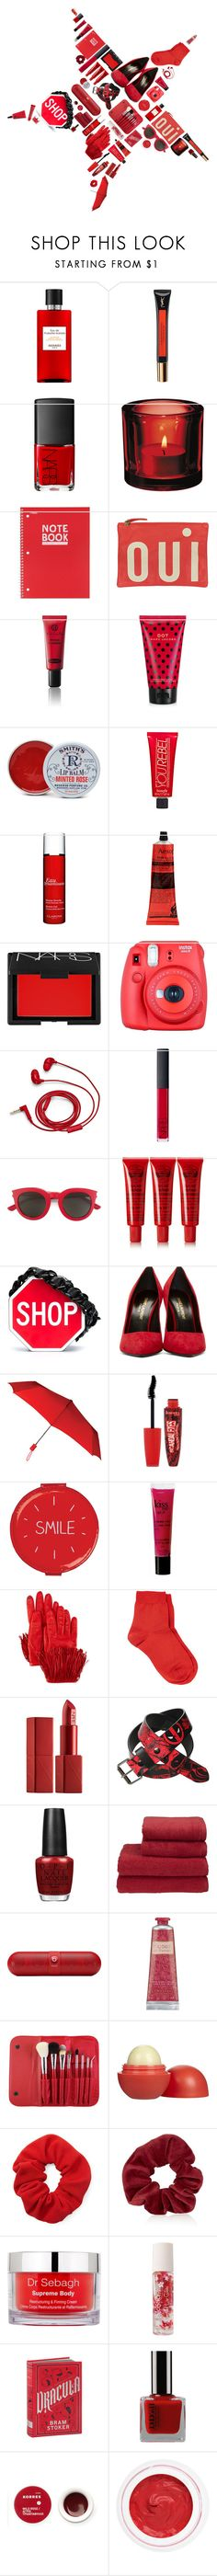 """Red Gifts"" by vendre-du-reve ❤ liked on Polyvore featuring Hermès, Yves Saint Laurent, NARS Cosmetics, iittala, Mead, Clare V., Koh Gen Do, Marc Jacobs, Rosebud Perfume Co. and Benefit"